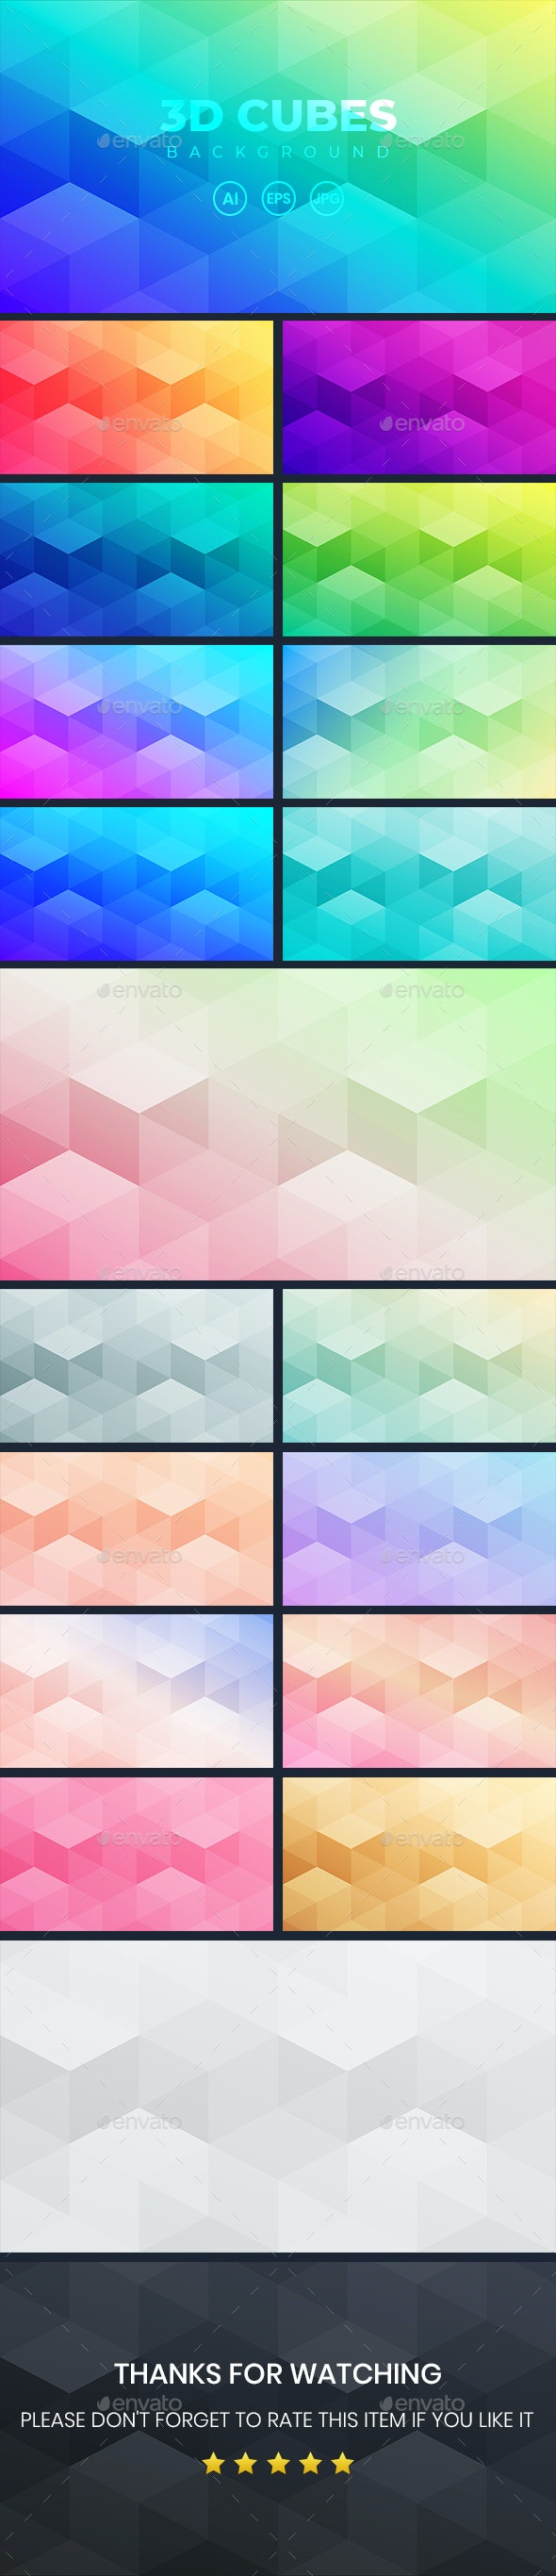 Abstract Gradient Background With 3D Cubes - Backgrounds Graphics